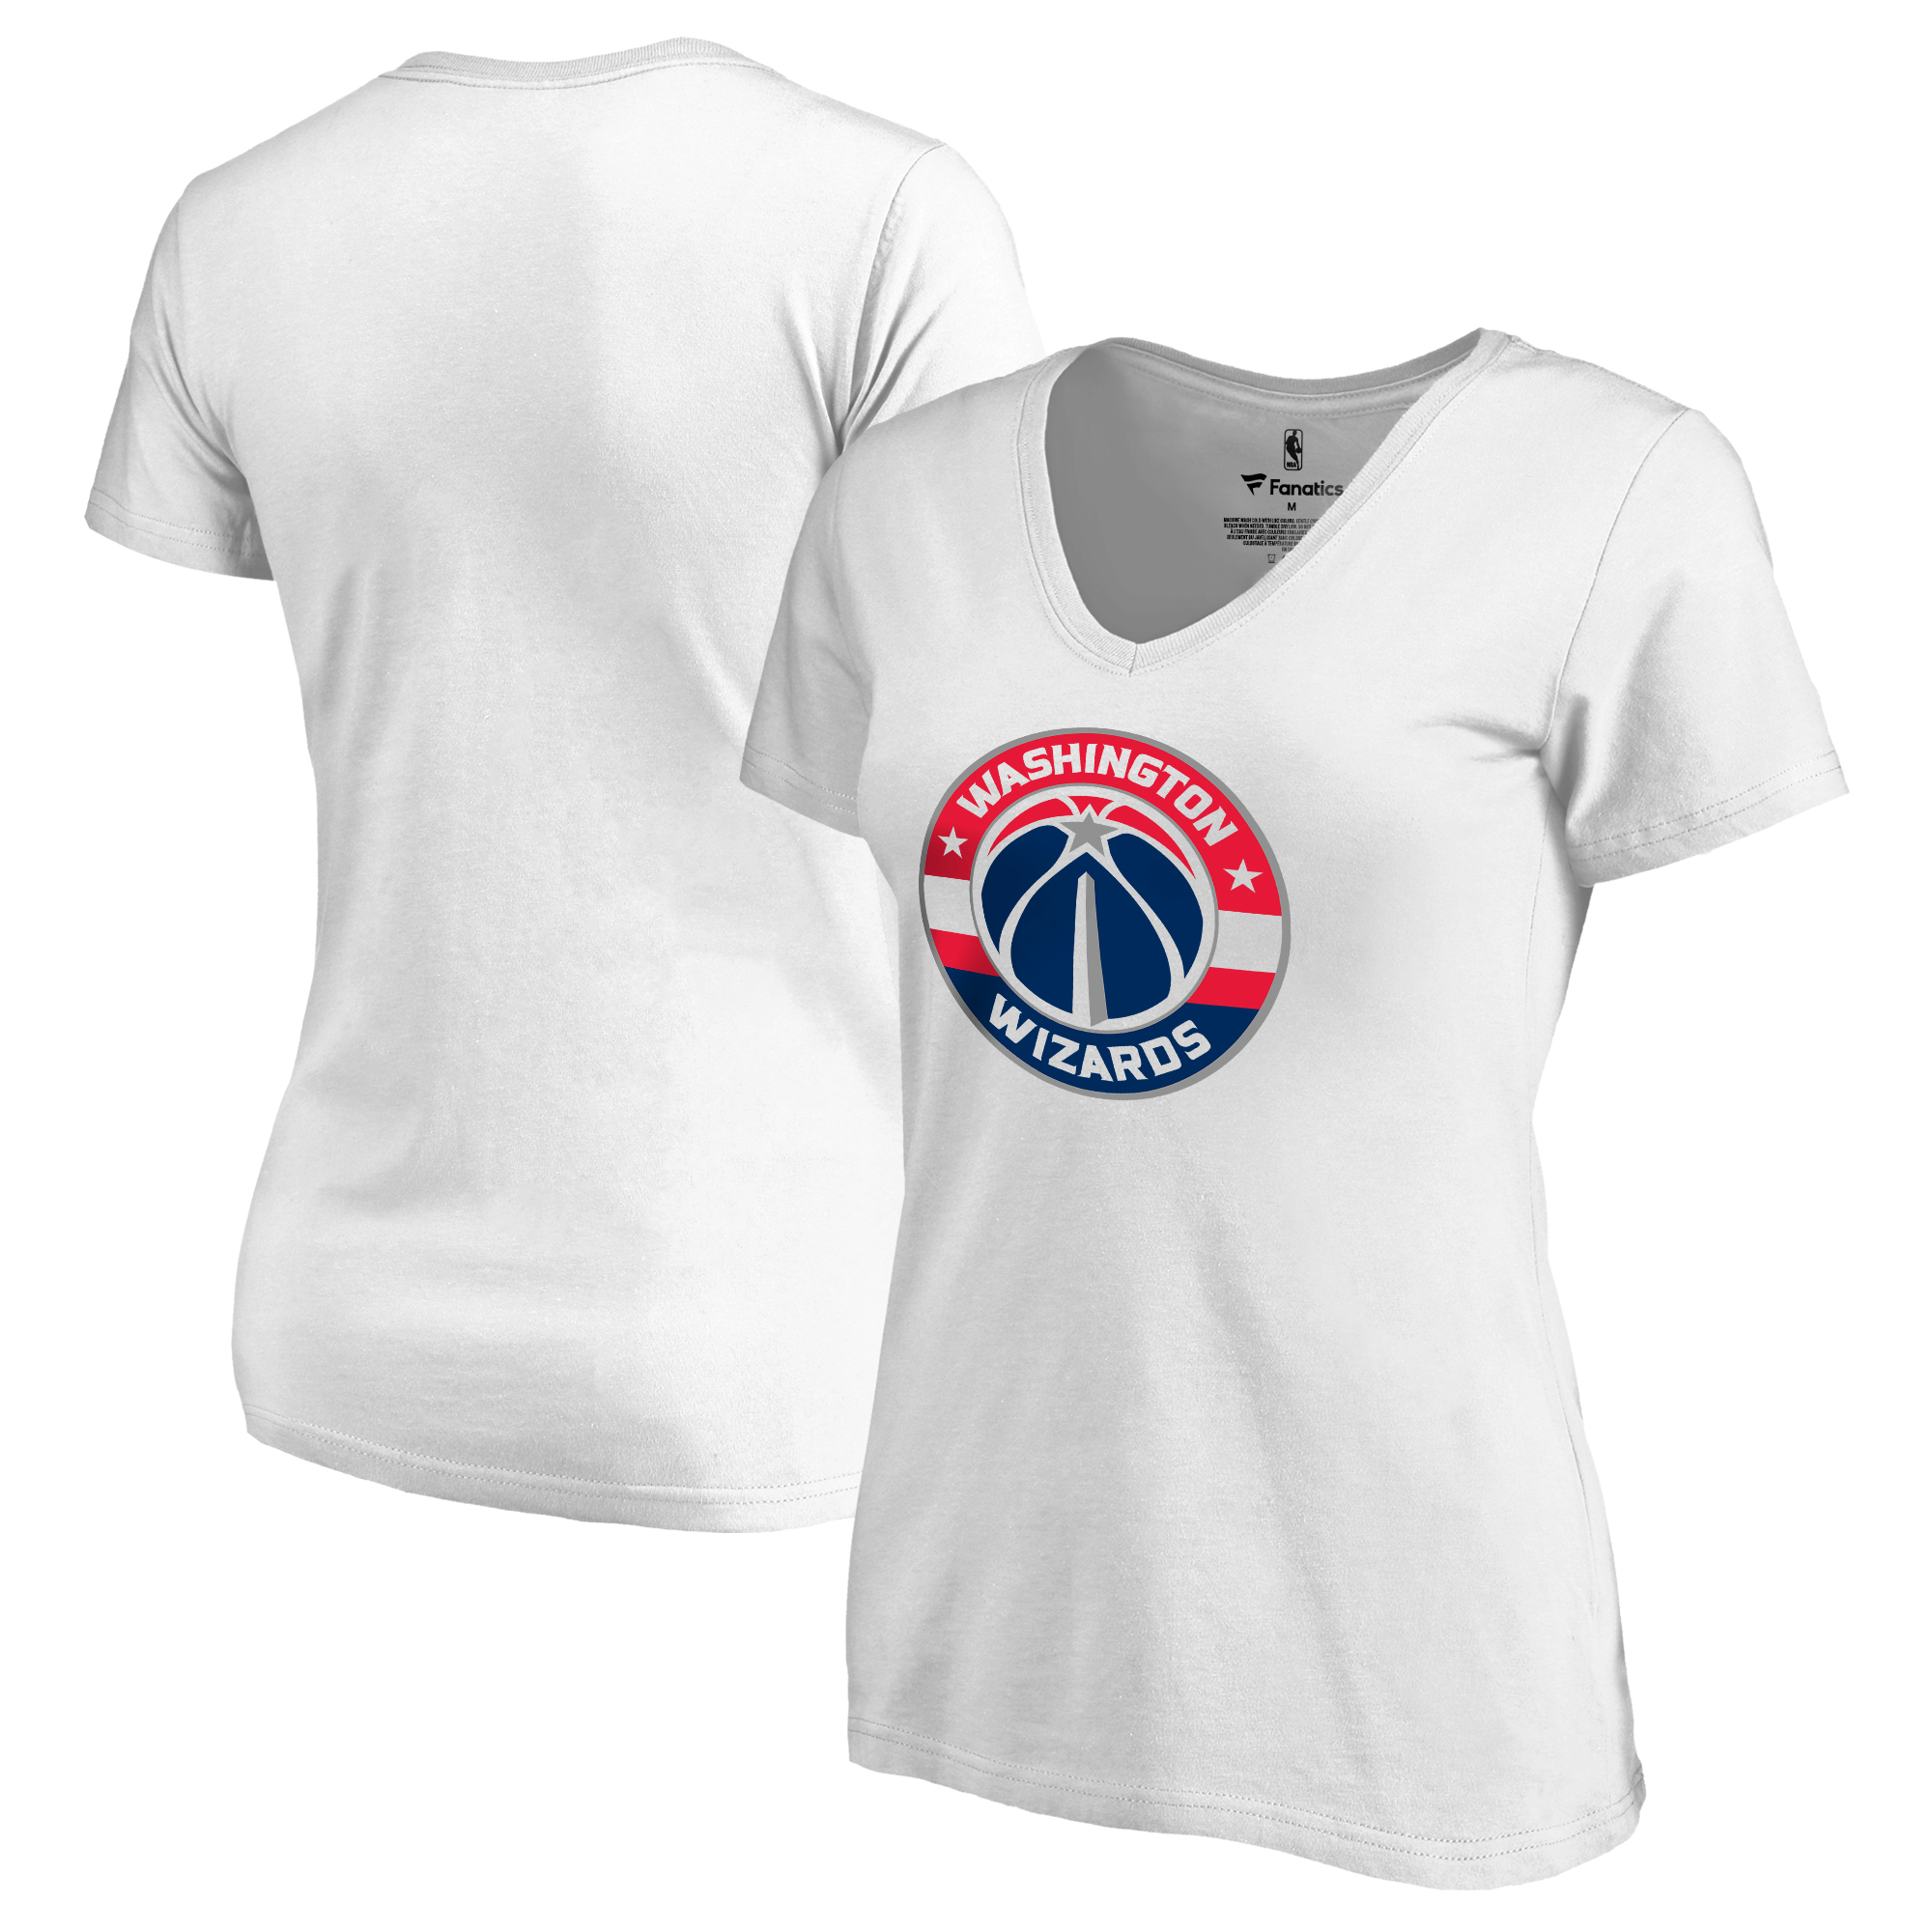 Washington Wizards Fanatics Branded Women's Plus Sizes Team Primary Logo T-Shirt - White